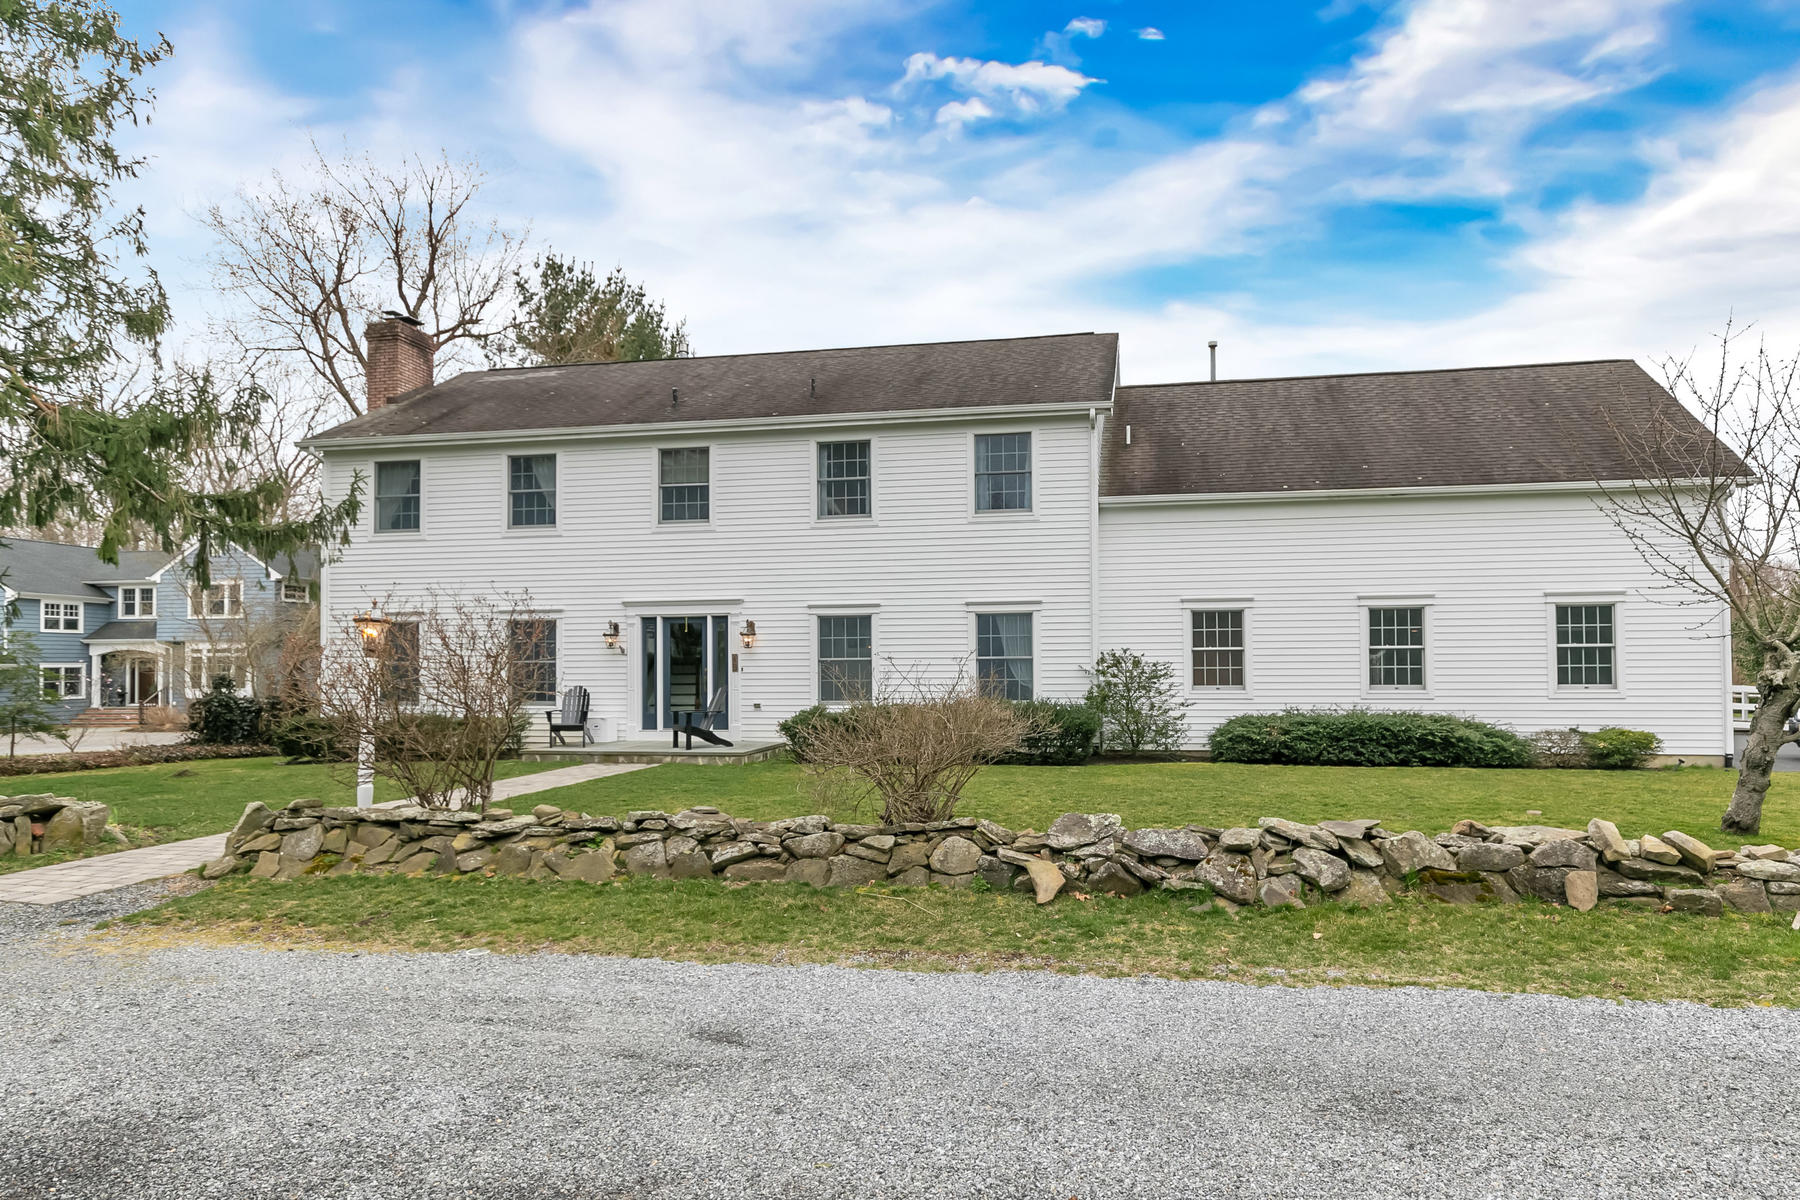 Single Family Home for Sale at Renovated Fair Haven Colonial 48 Browns Ln, Fair Haven, New Jersey 07704 United States